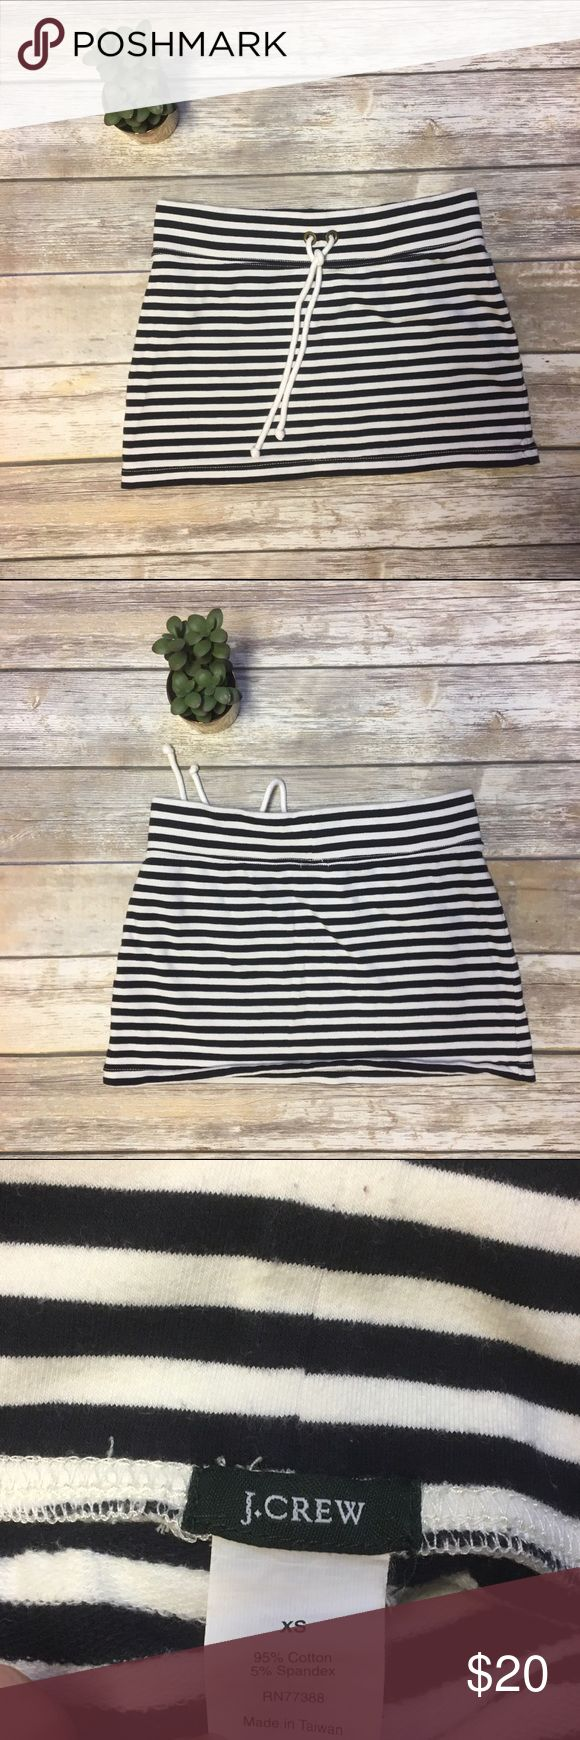 J. Crew Nautical Skirt Super adorable Nautical striped skirt by J. Crew. Drawstring waistband and soft, stretchy material. J. Crew Skirts Mini